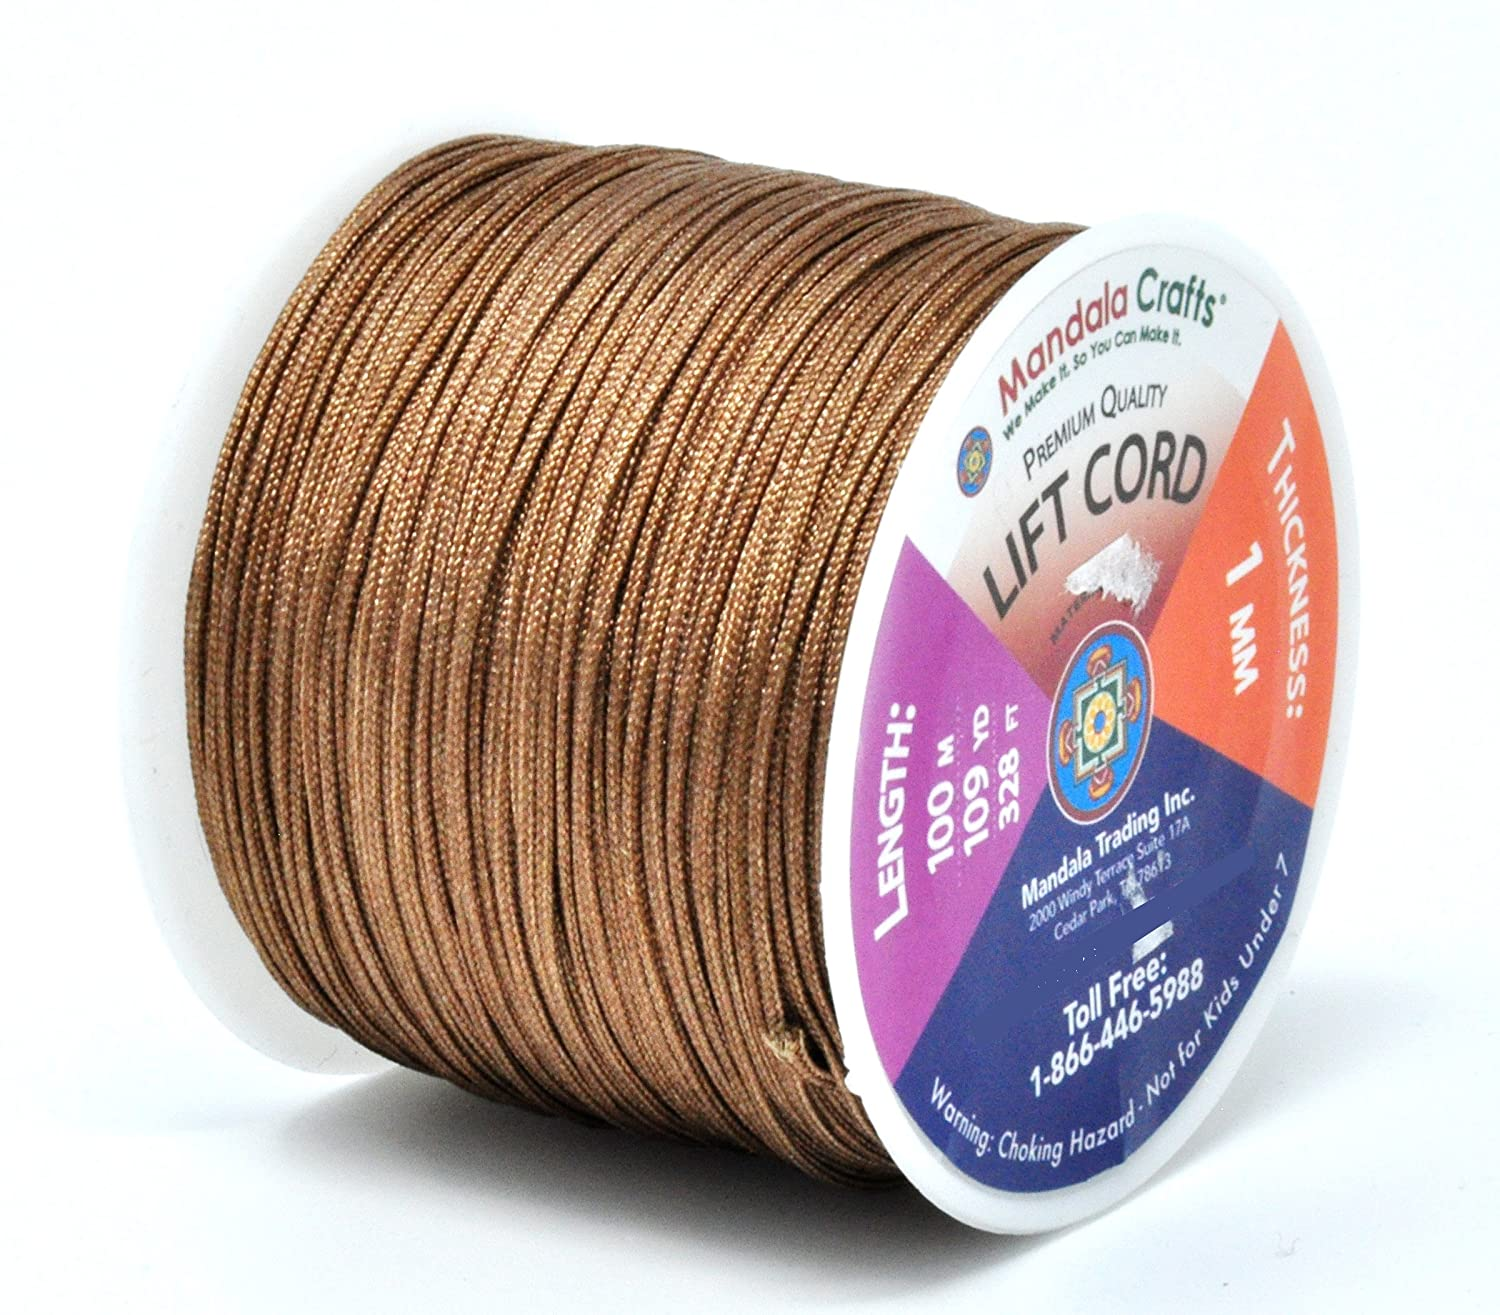 Windows 1mm, Chocolate Brown Shades Mandala Crafts Blinds String Lift Cord Replacement from Braided Nylon for RVs and Rollers